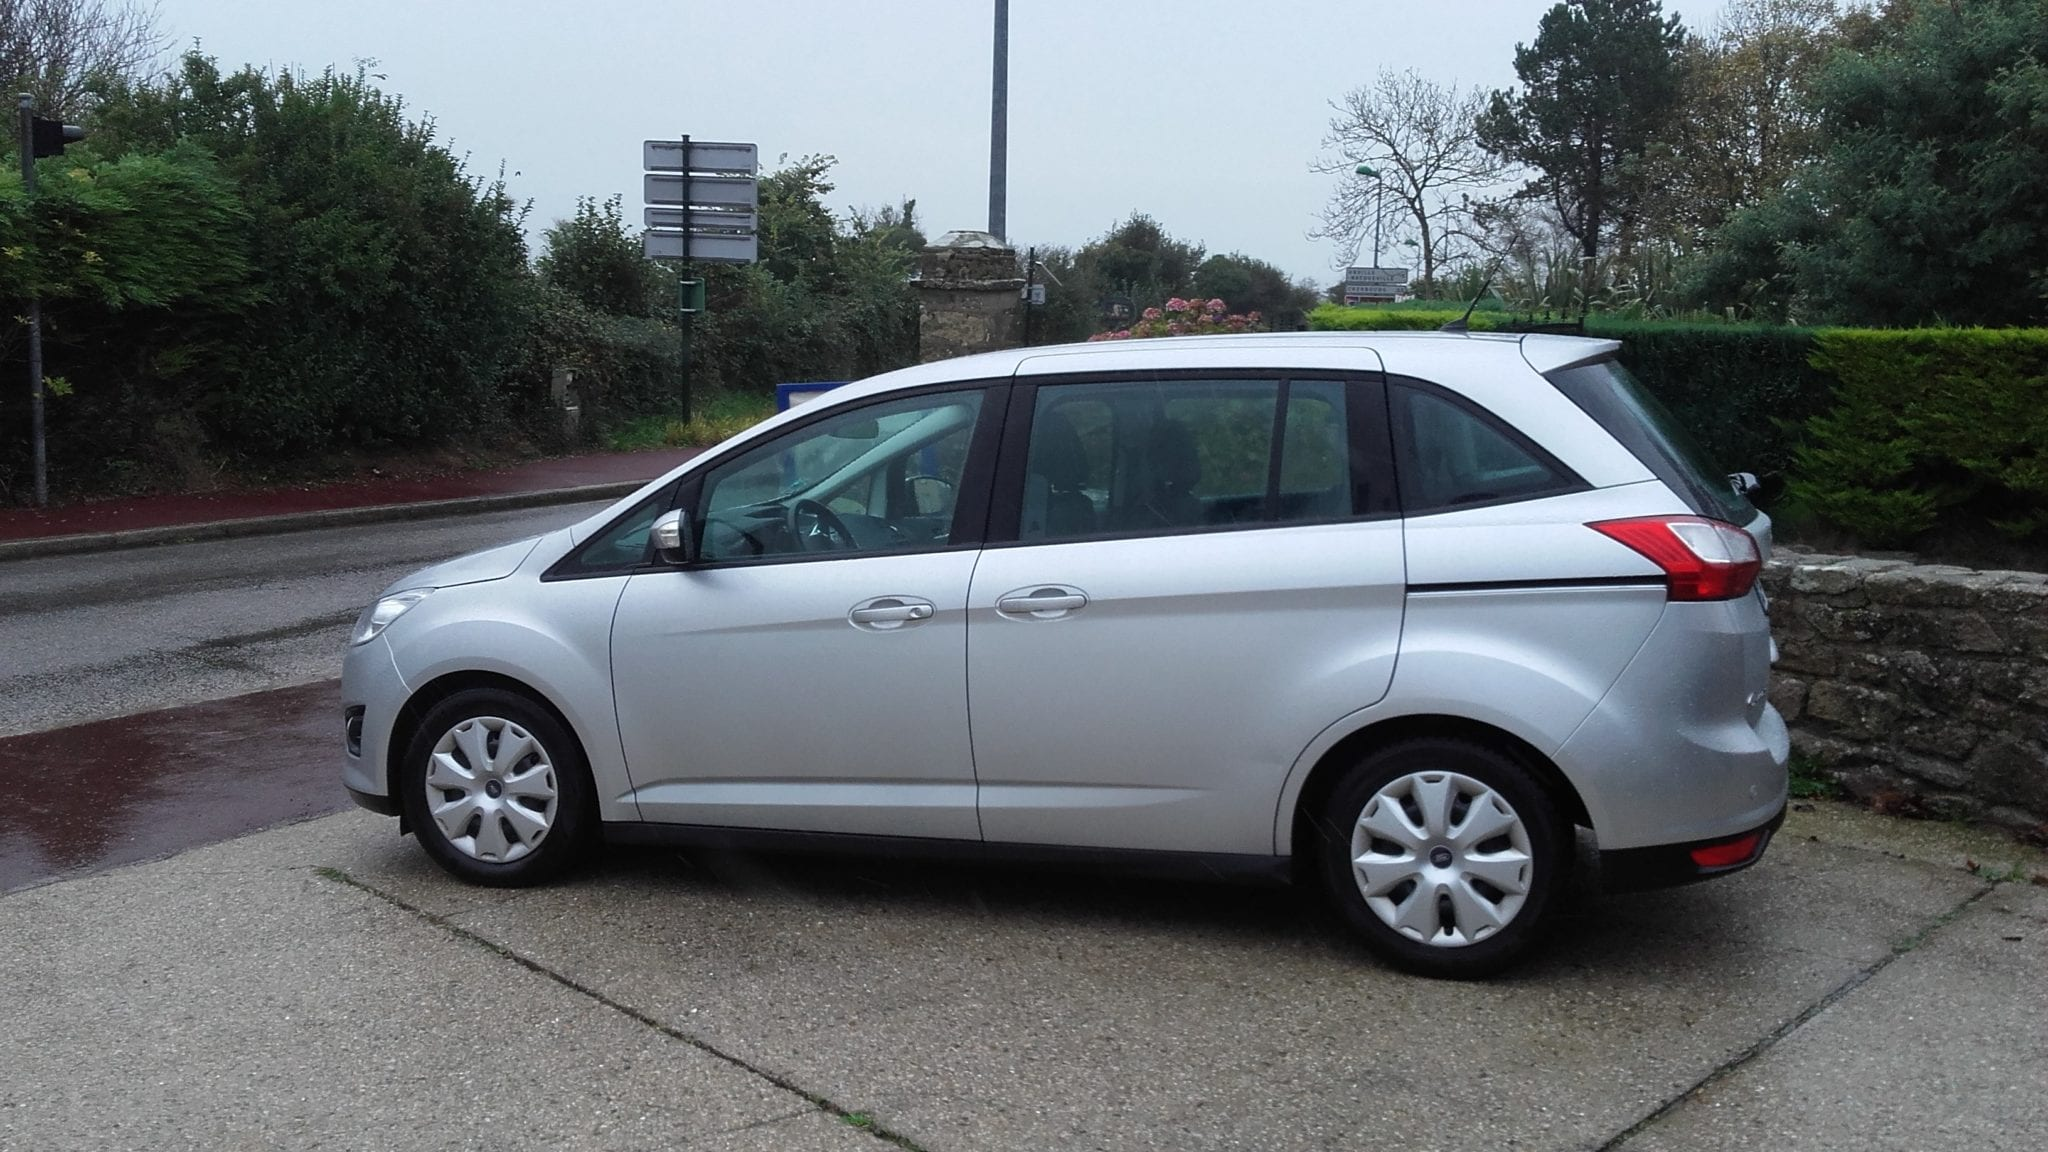 Ford grand c-max  7places - Image 1